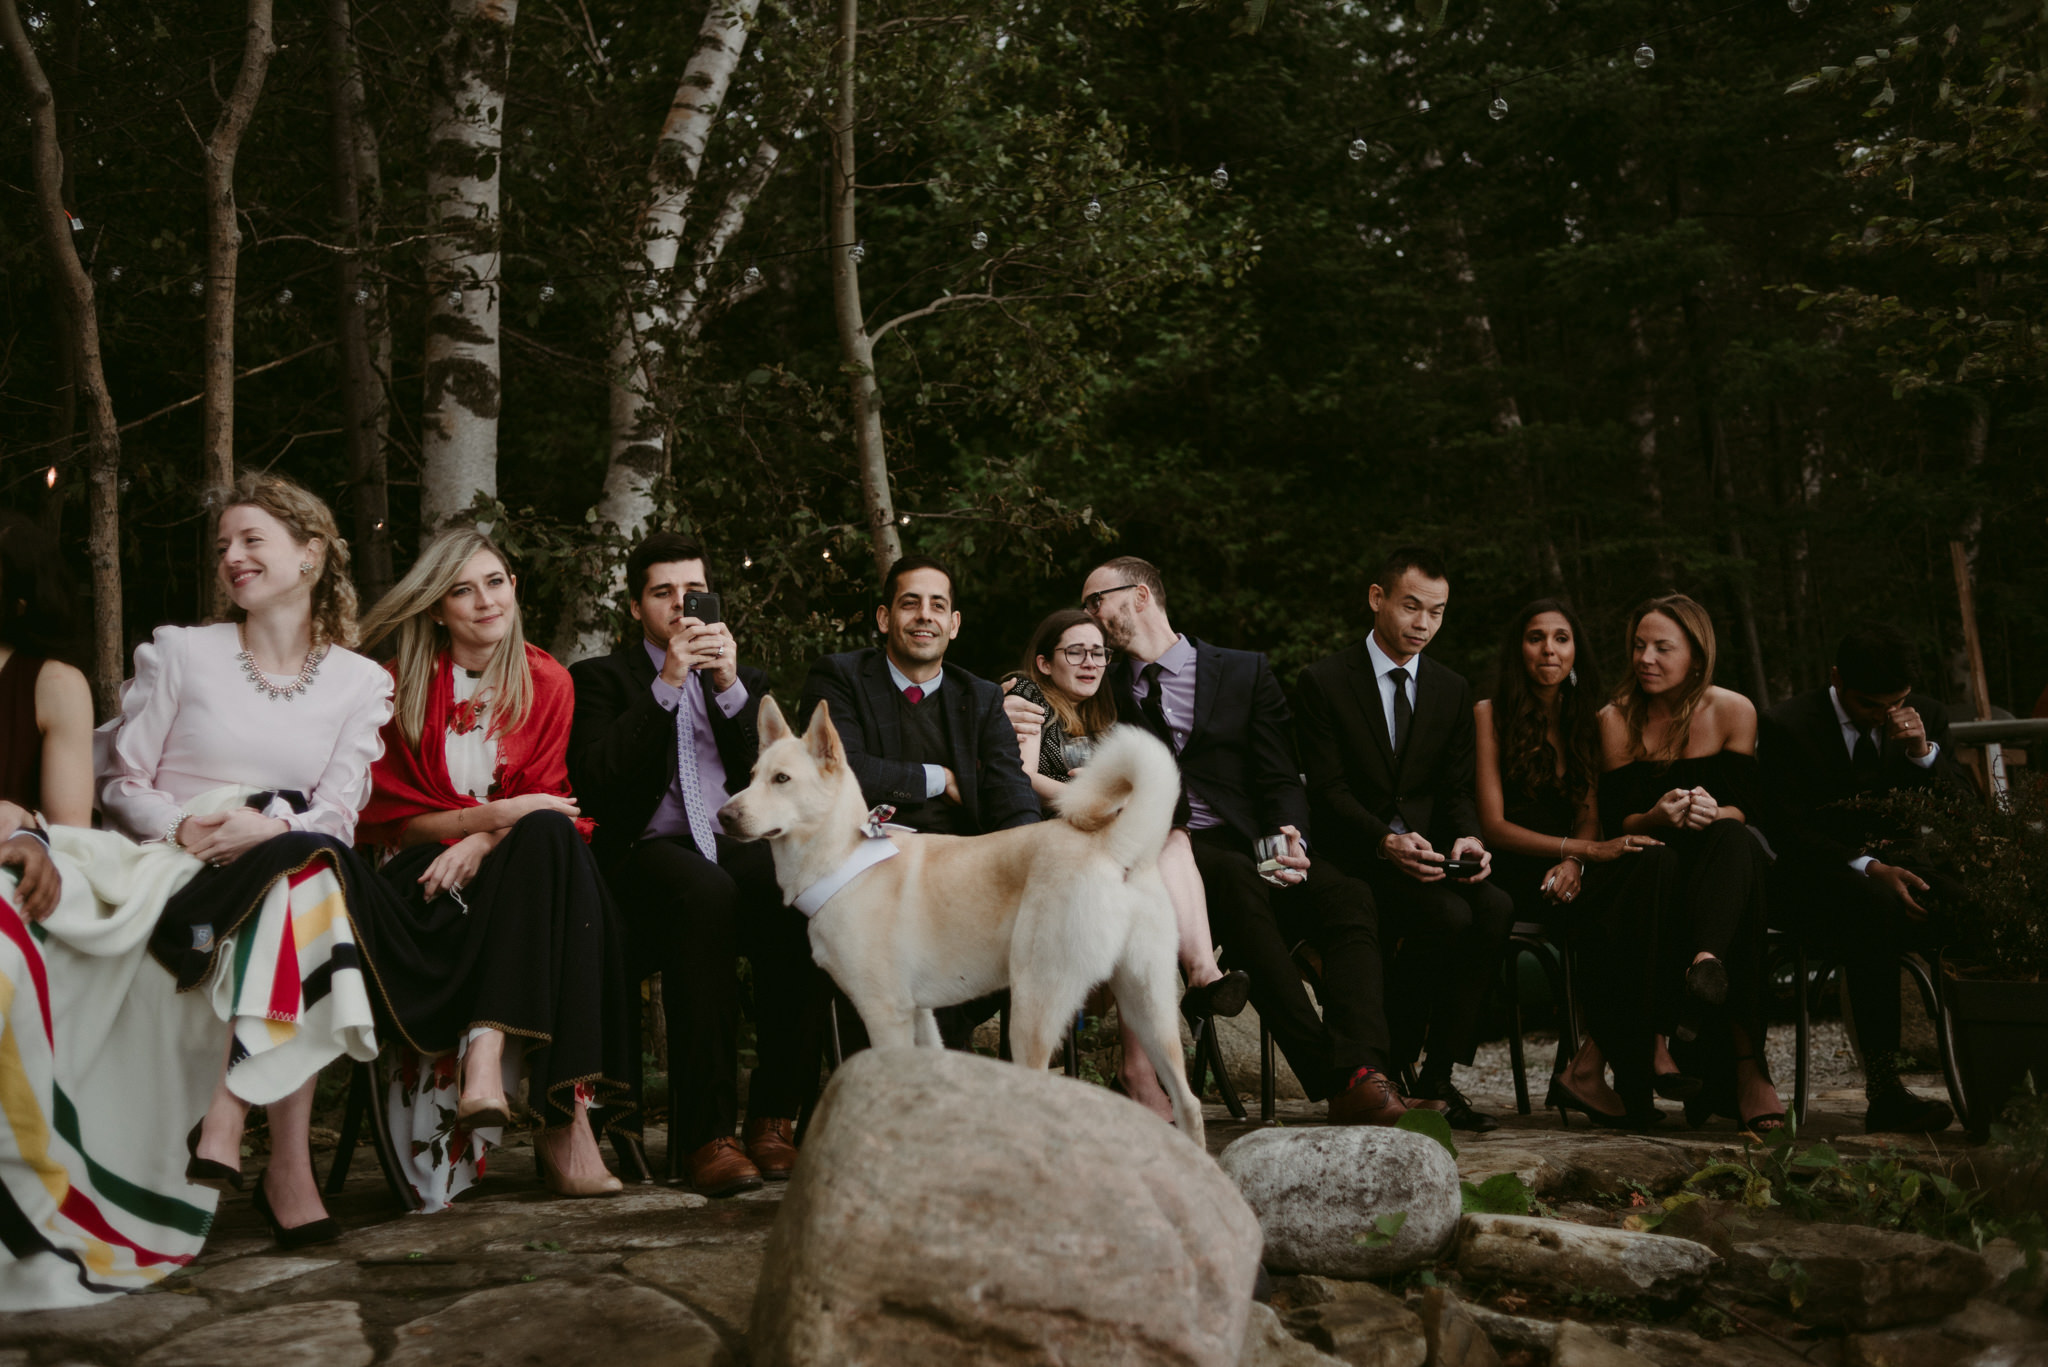 guests and dog at wedding ceremony